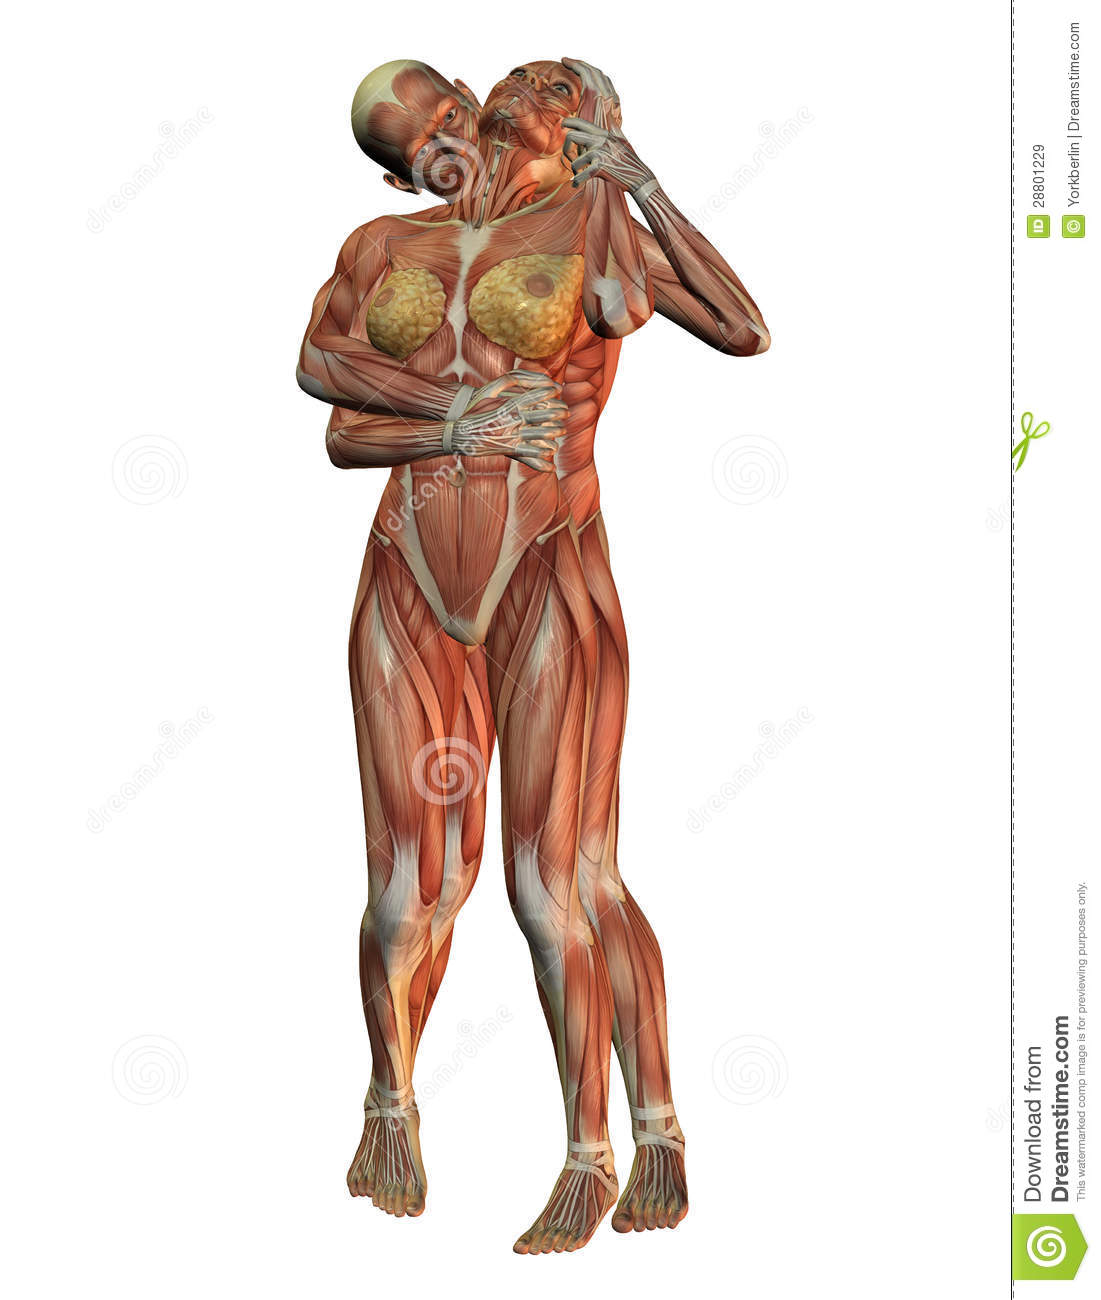 Anatomy And Muscle Structure Stock Illustration Illustration Of